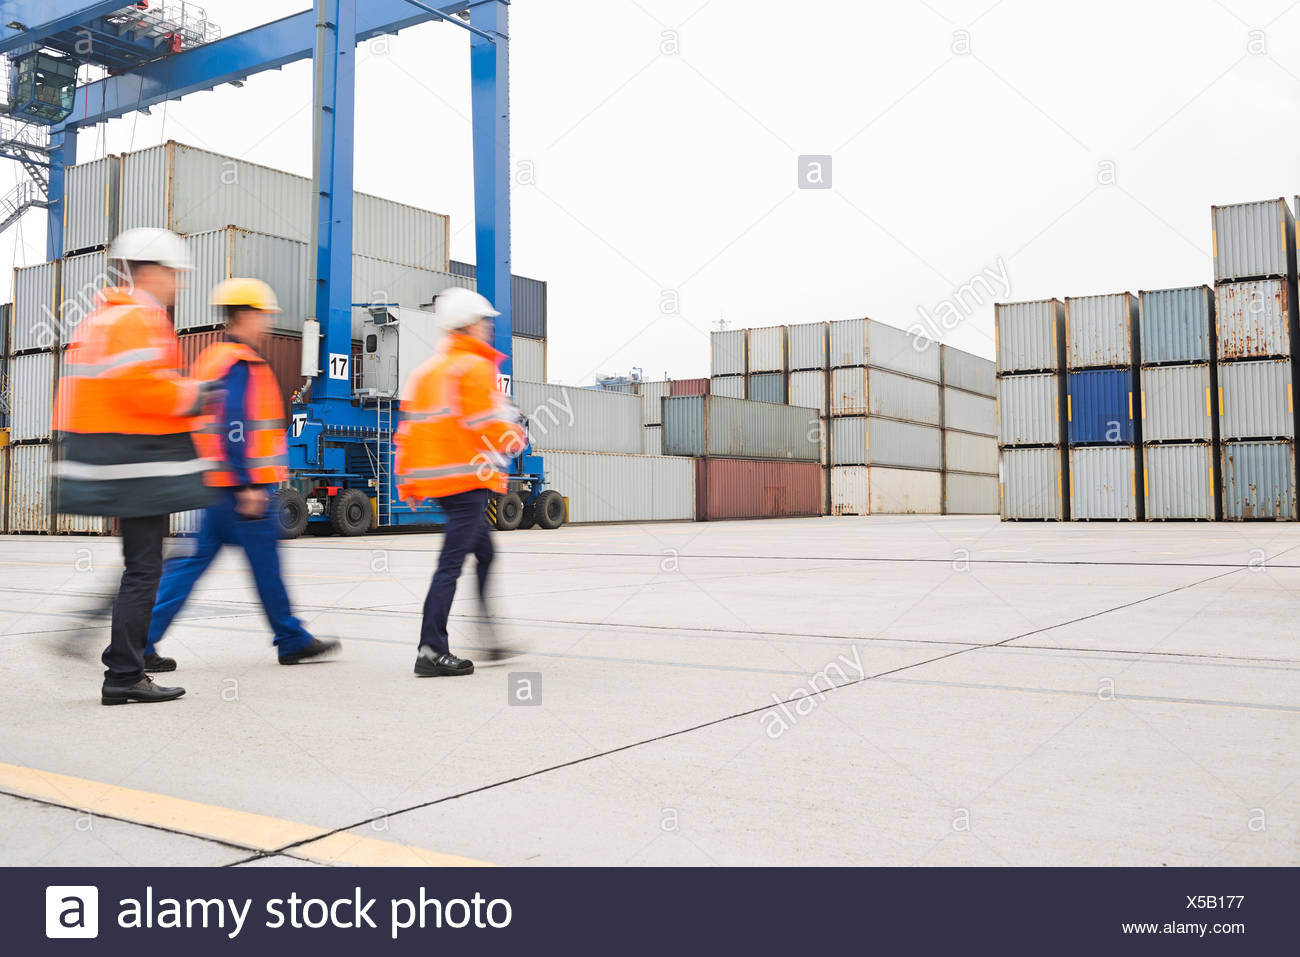 Full-length rear view of workers walking in shipping yard - Stock Image